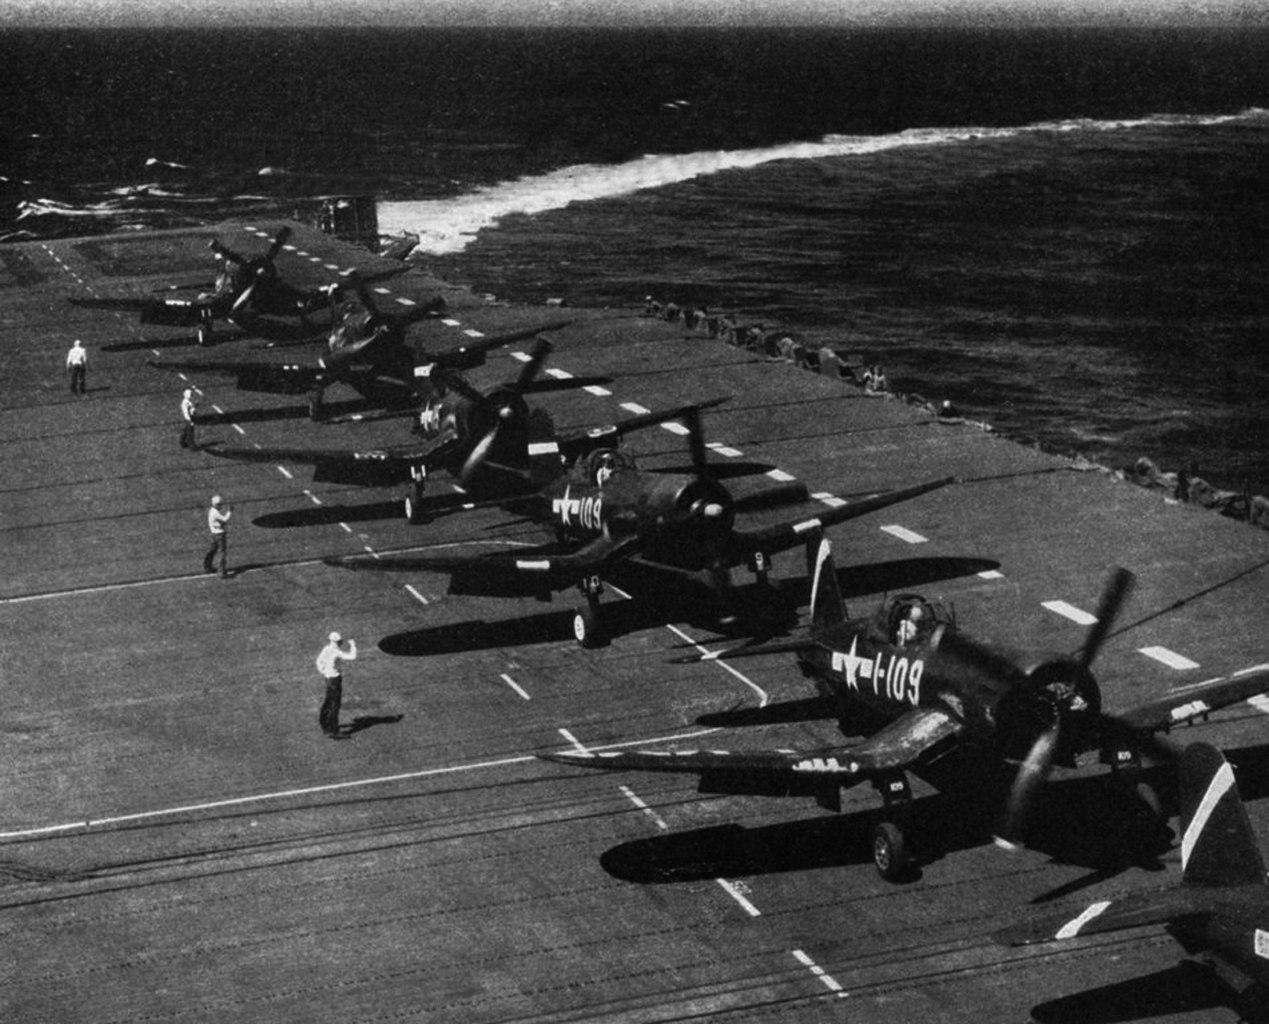 Here's how the Royal Navy fixed the F4U shortcomings for which the US Navy deemed the Corsair unsuitable for aircraft carrier operations